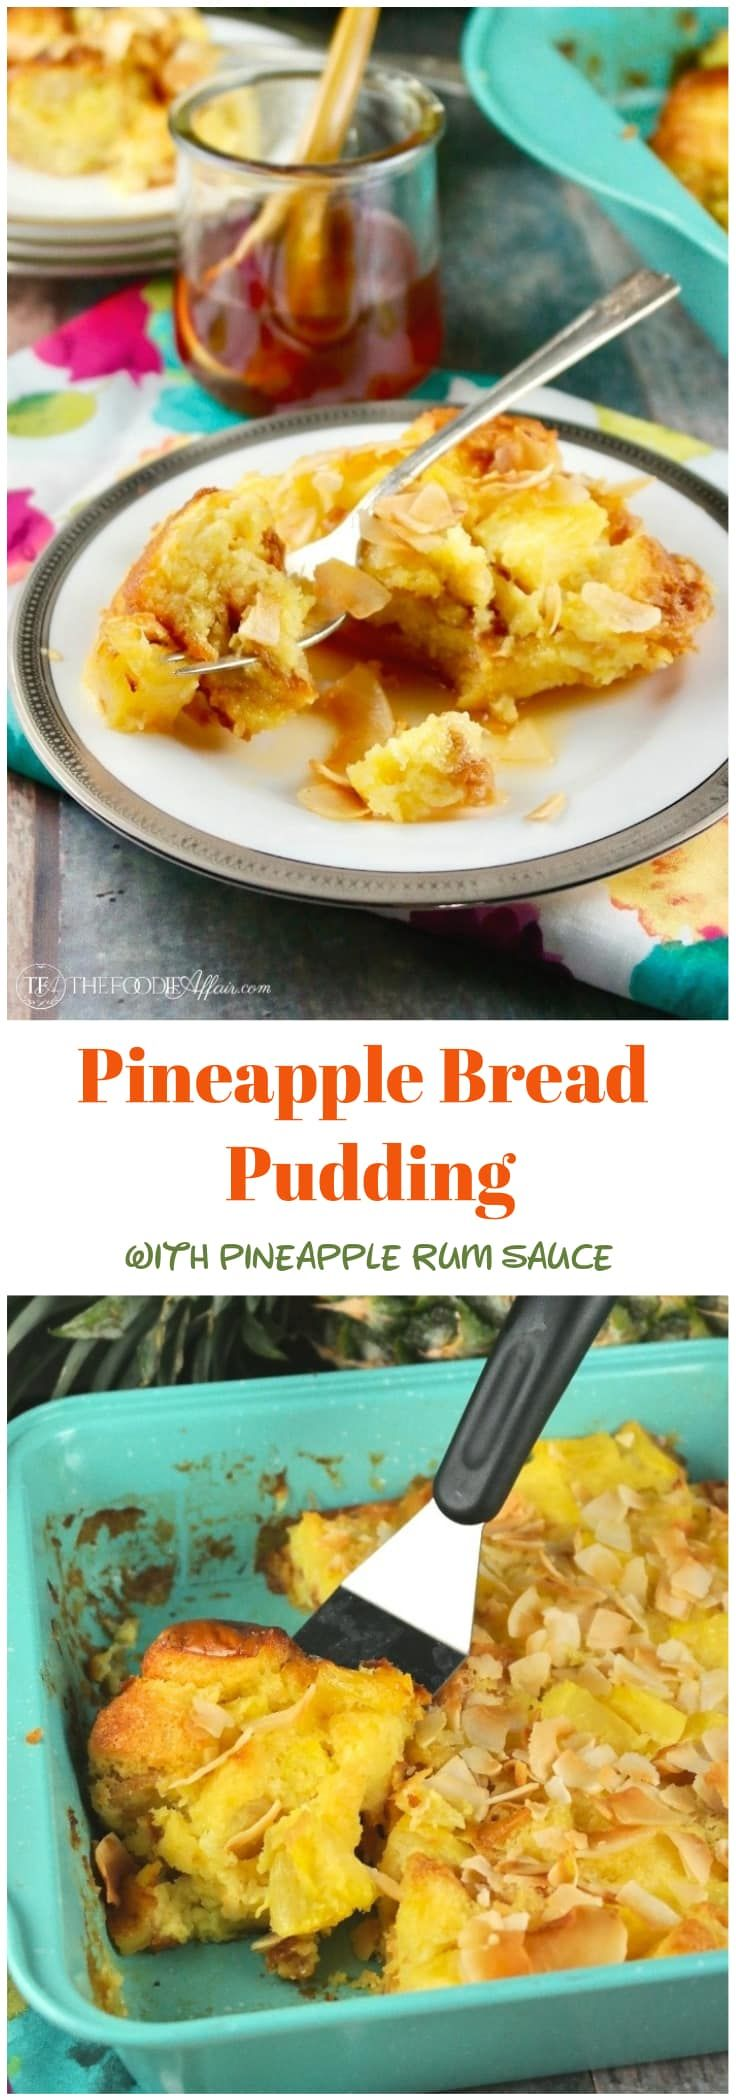 Tropical pineapple bread pudding with a simple pineapple rum sauce. This easy recipe is made with sweet bread, coconut flakes, pineapple pieces, eggs and butter. Enjoy for brunch!